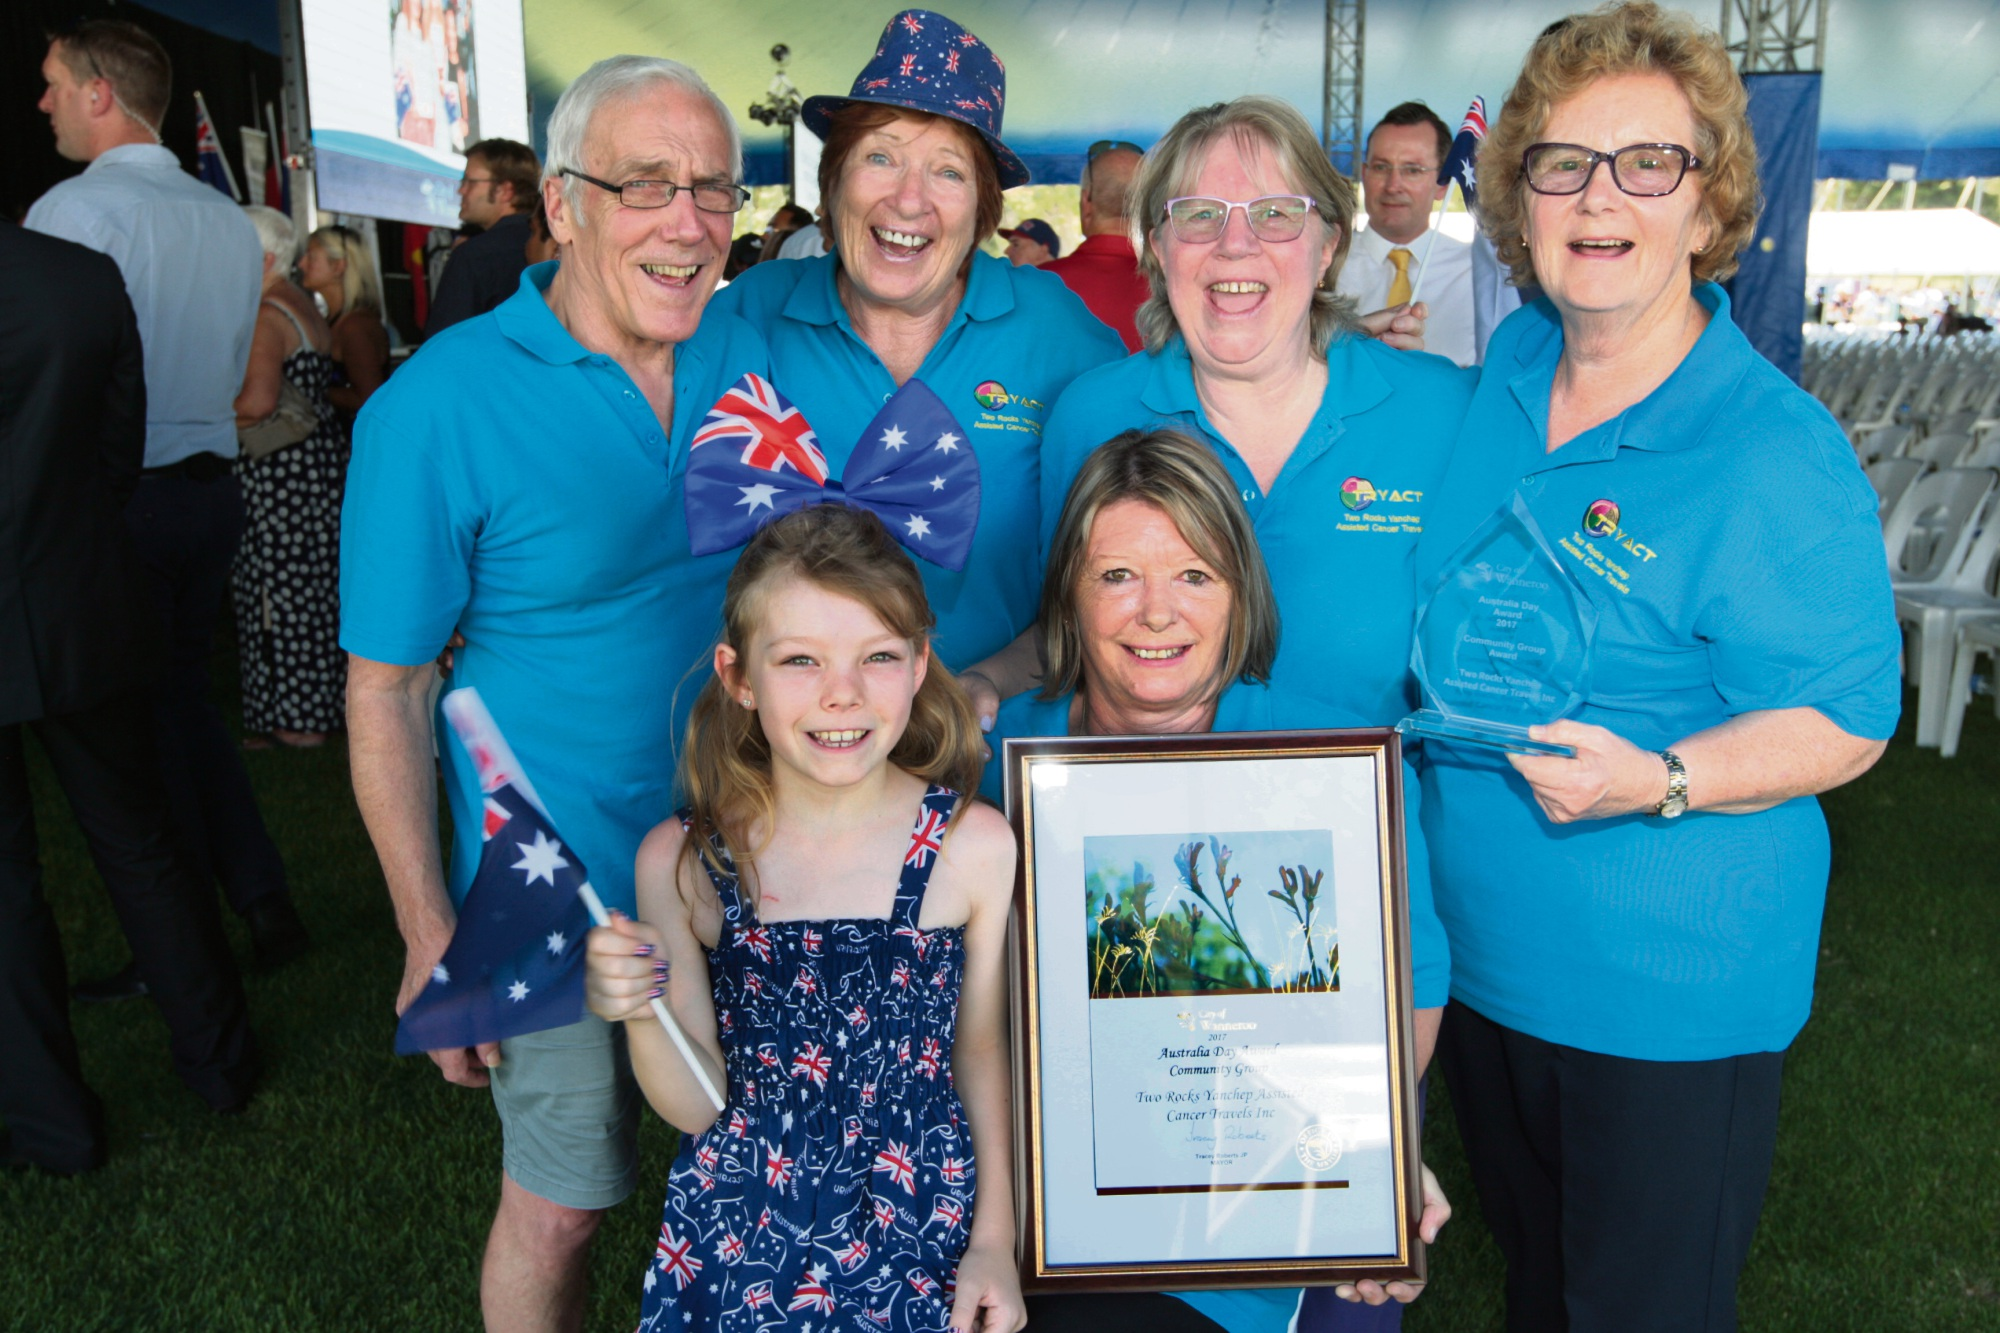 Two Rocks Yanchep Assisted Cancer Travels won the community group award at this Year's City of Wanneroo Australia Day event. Members Ron Hutchins, Anita Stockburger, Jo Hutchins and Jayne Senior with (front) Krystal Fallows and Sue Dash attended the ceremony. Picture: Bruce Hunt d464483